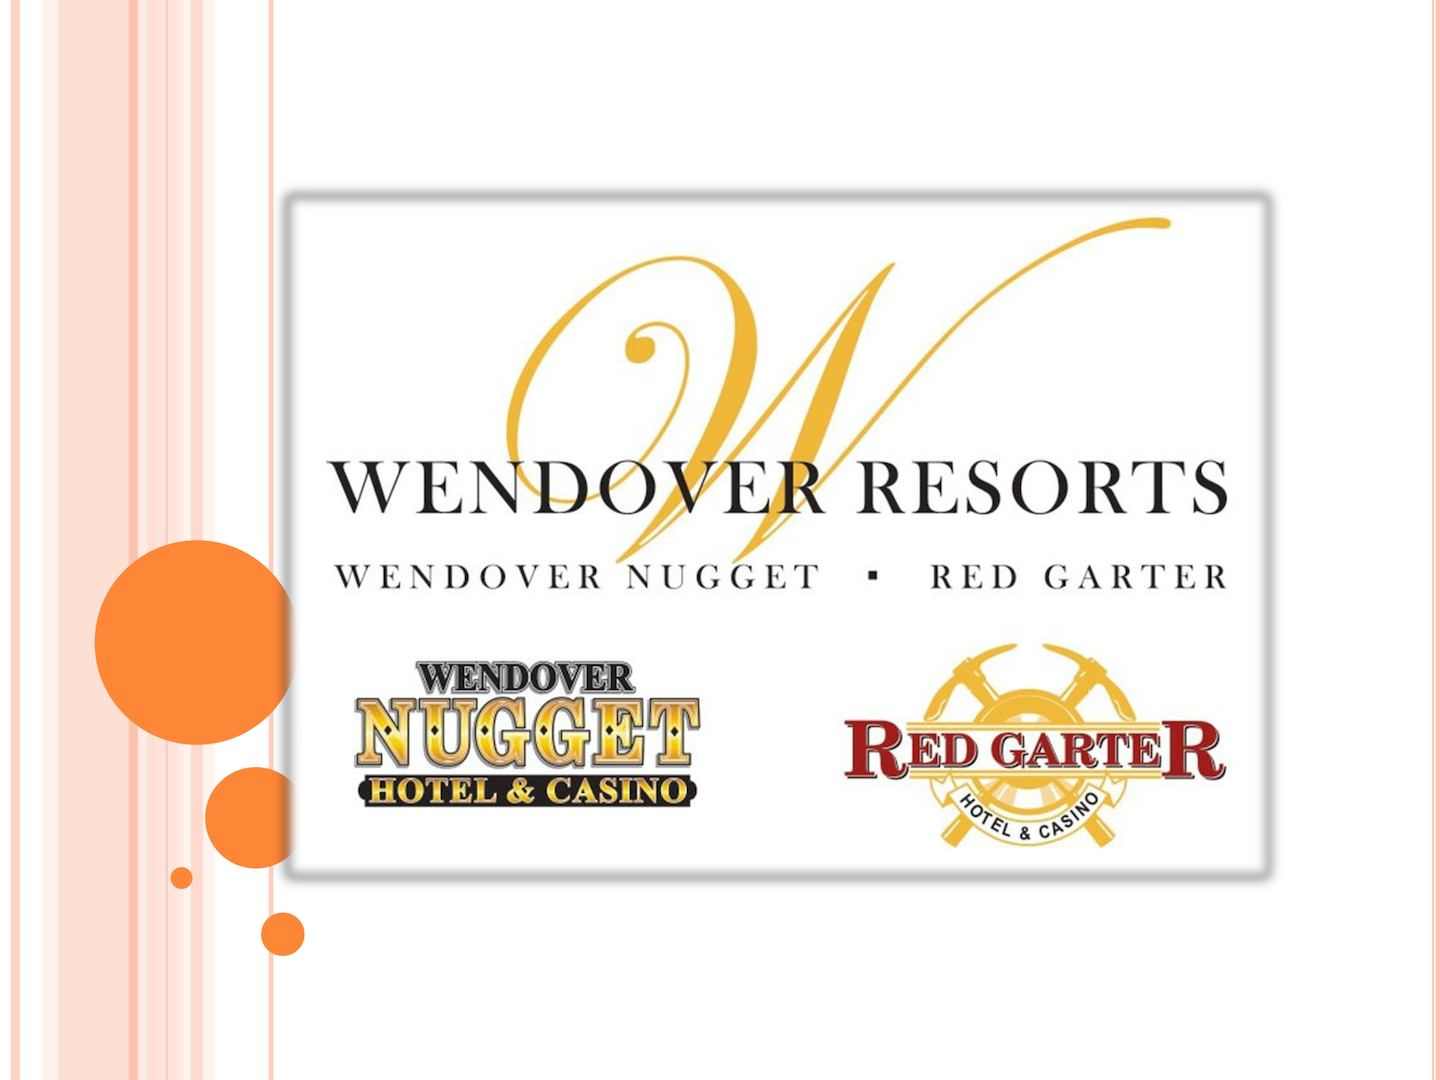 Things to do in wendover besides gambling imperial palace casino employment